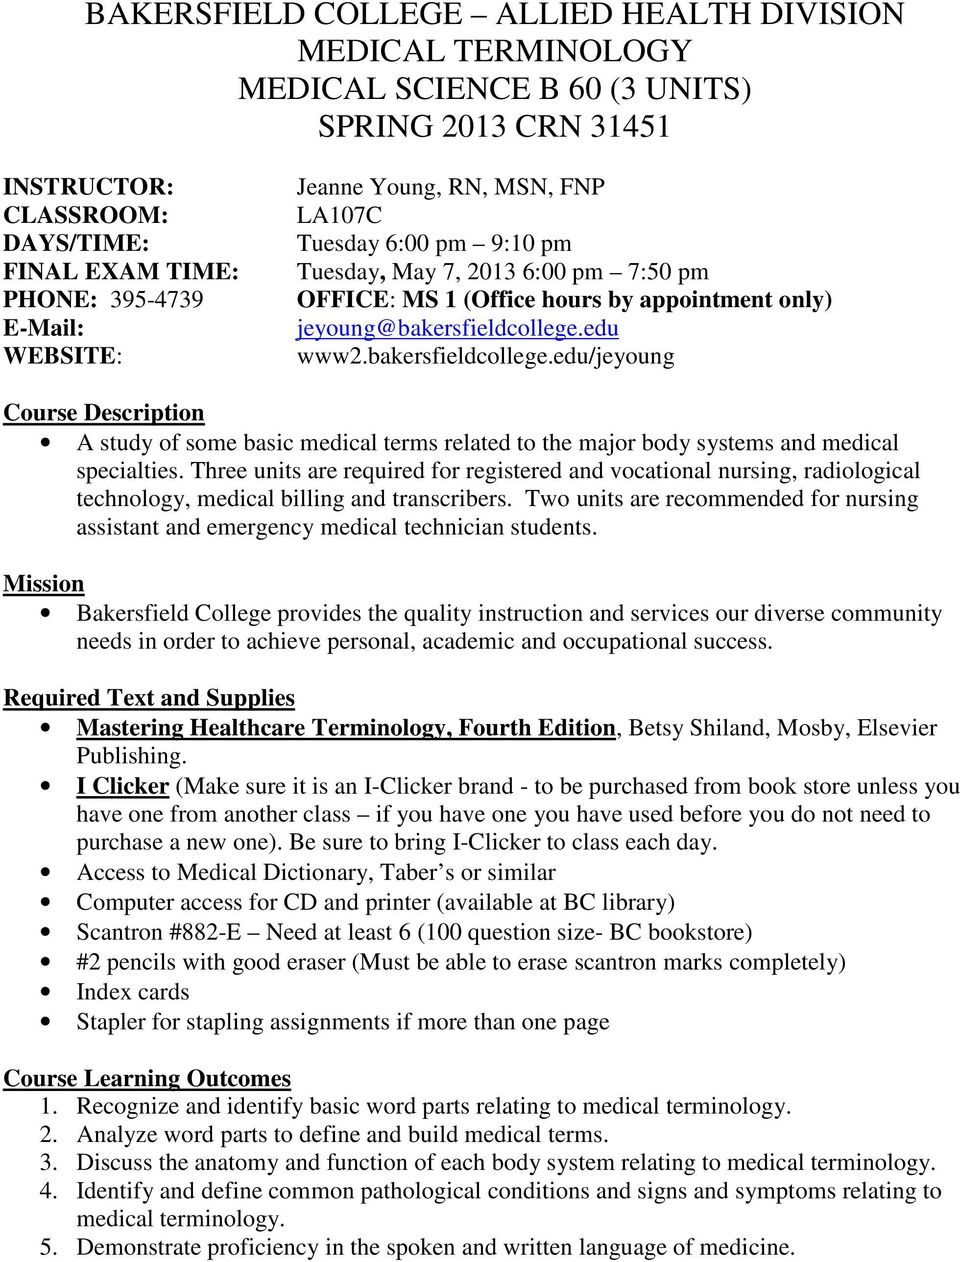 BAKERSFIELD COLLEGE ALLIED HEALTH DIVISION MEDICAL